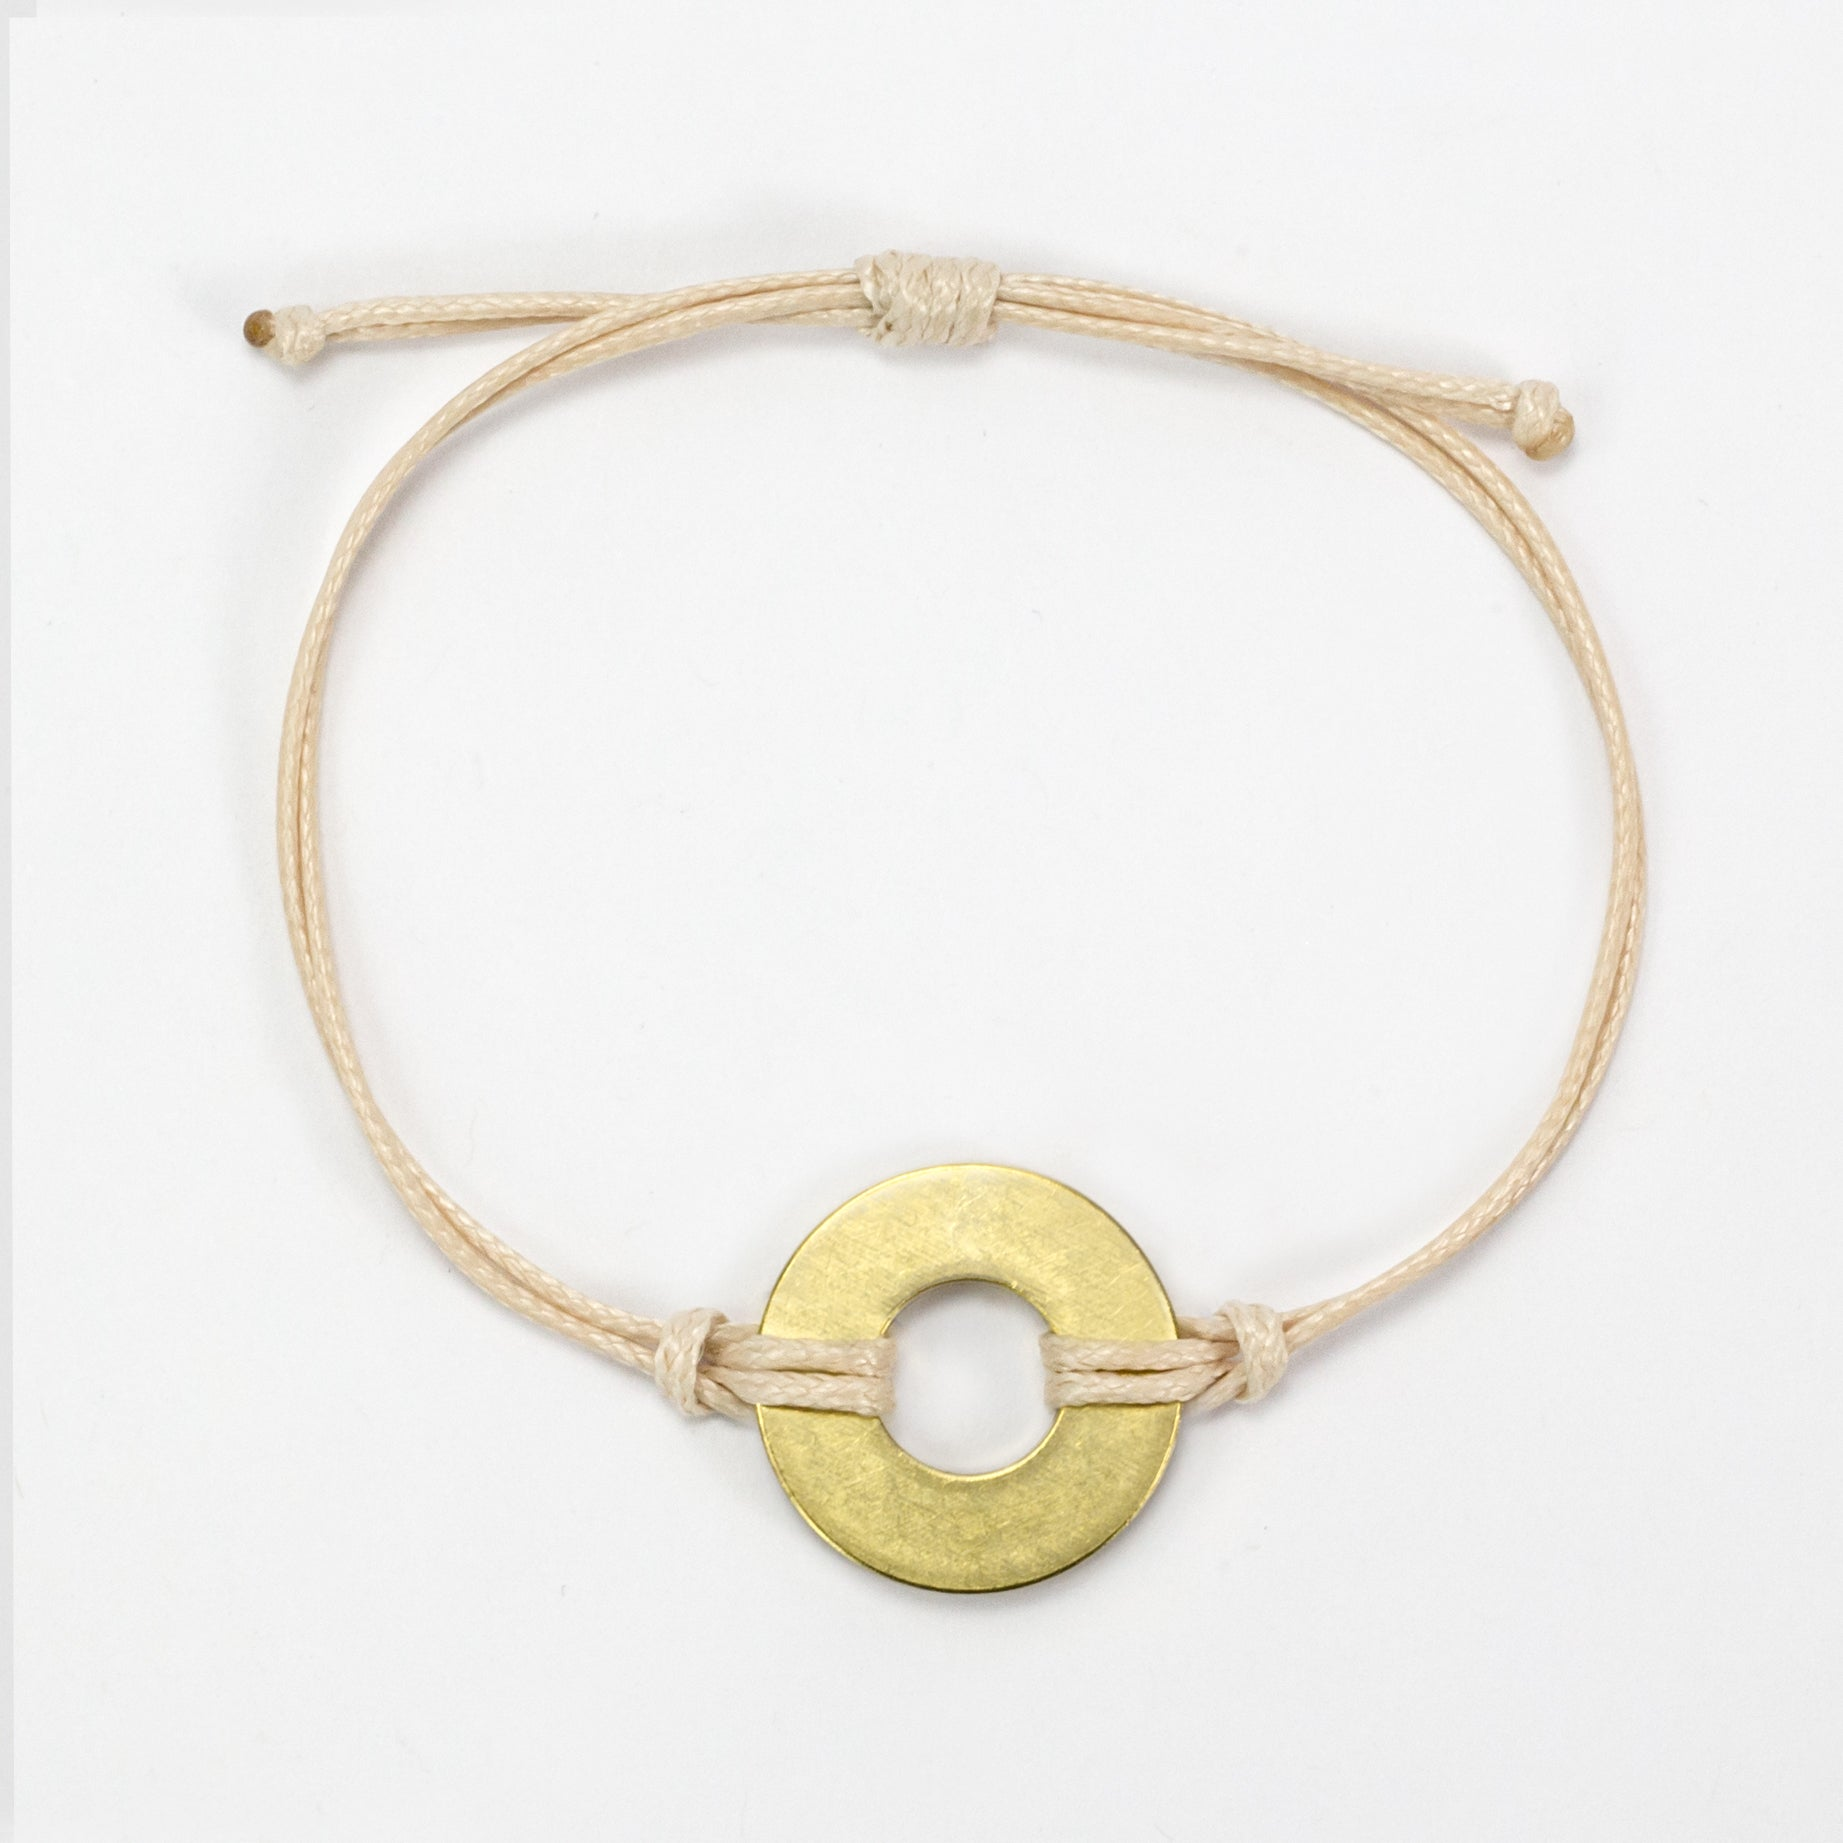 MyIntent Refill Classic Bracelet Cream String with Brass token